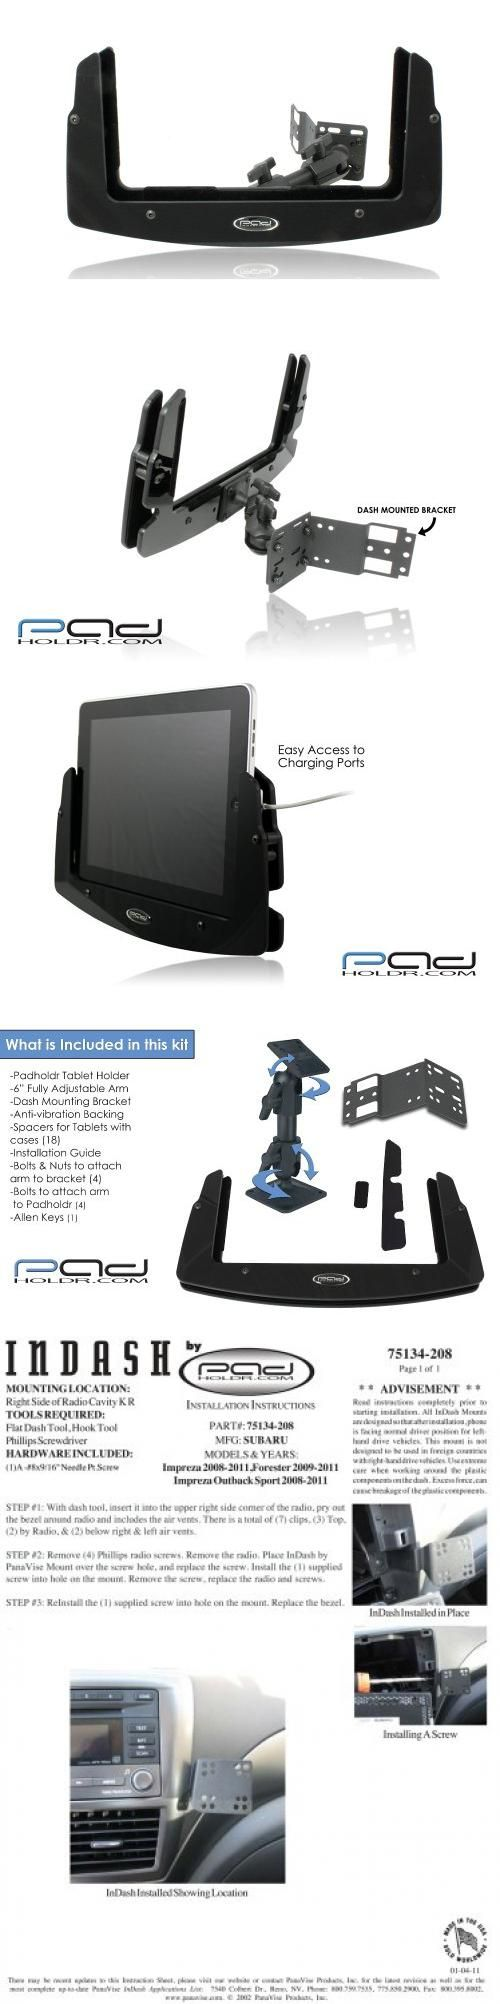 Padholder Edge Series Premium Tablet Dash Kit 2008-2012 Subaru Impreza & Forester for iPad & Other Tablets Fits: 2009 - 2012 Subaru Forester. Fits: 2008 - 2012 Subaru Impreza & 2008 - 2011 Subaru Impreza Outback Sport. Works with: all iPad's except mini, Xoom 1,2, Galaxy Tab 10.1, Asus Transformer, Acer Iconia A500, HP TouchPad, Otterbox Cases, Life Proof Cases, Thrive, Gateway A60 & More. Include... #PADHOLDR #Car_Audio_or_Theater